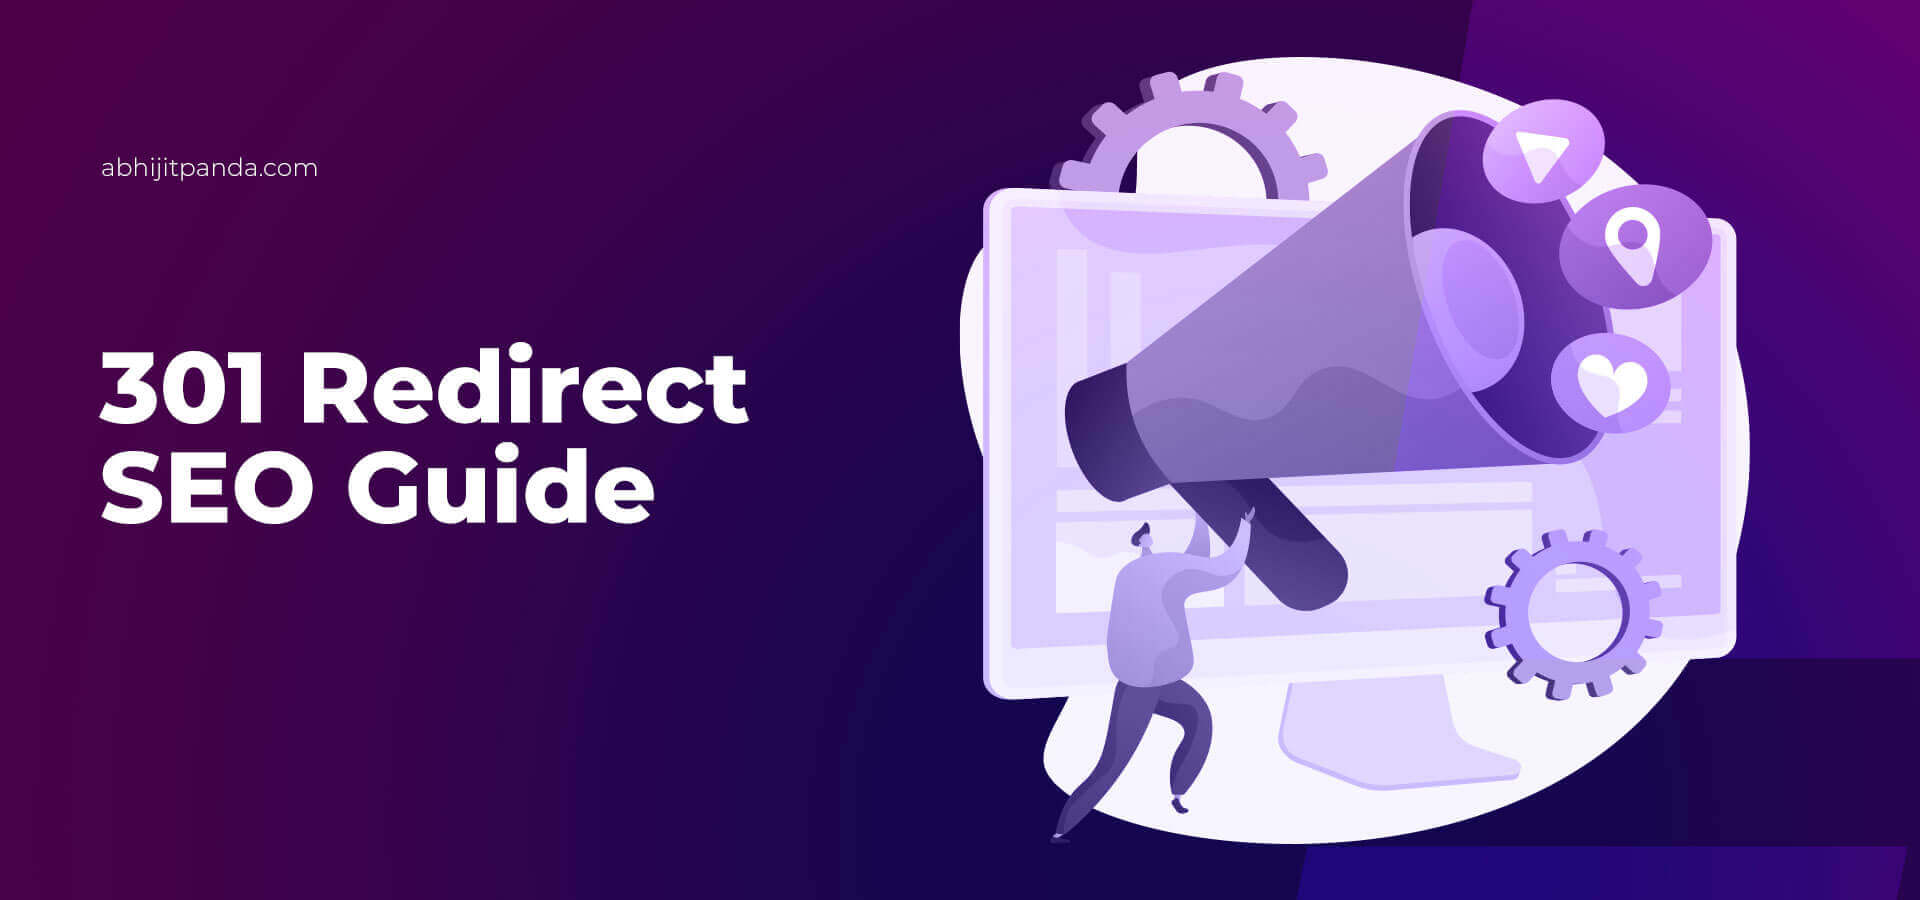 301 Redirect SEO Guide